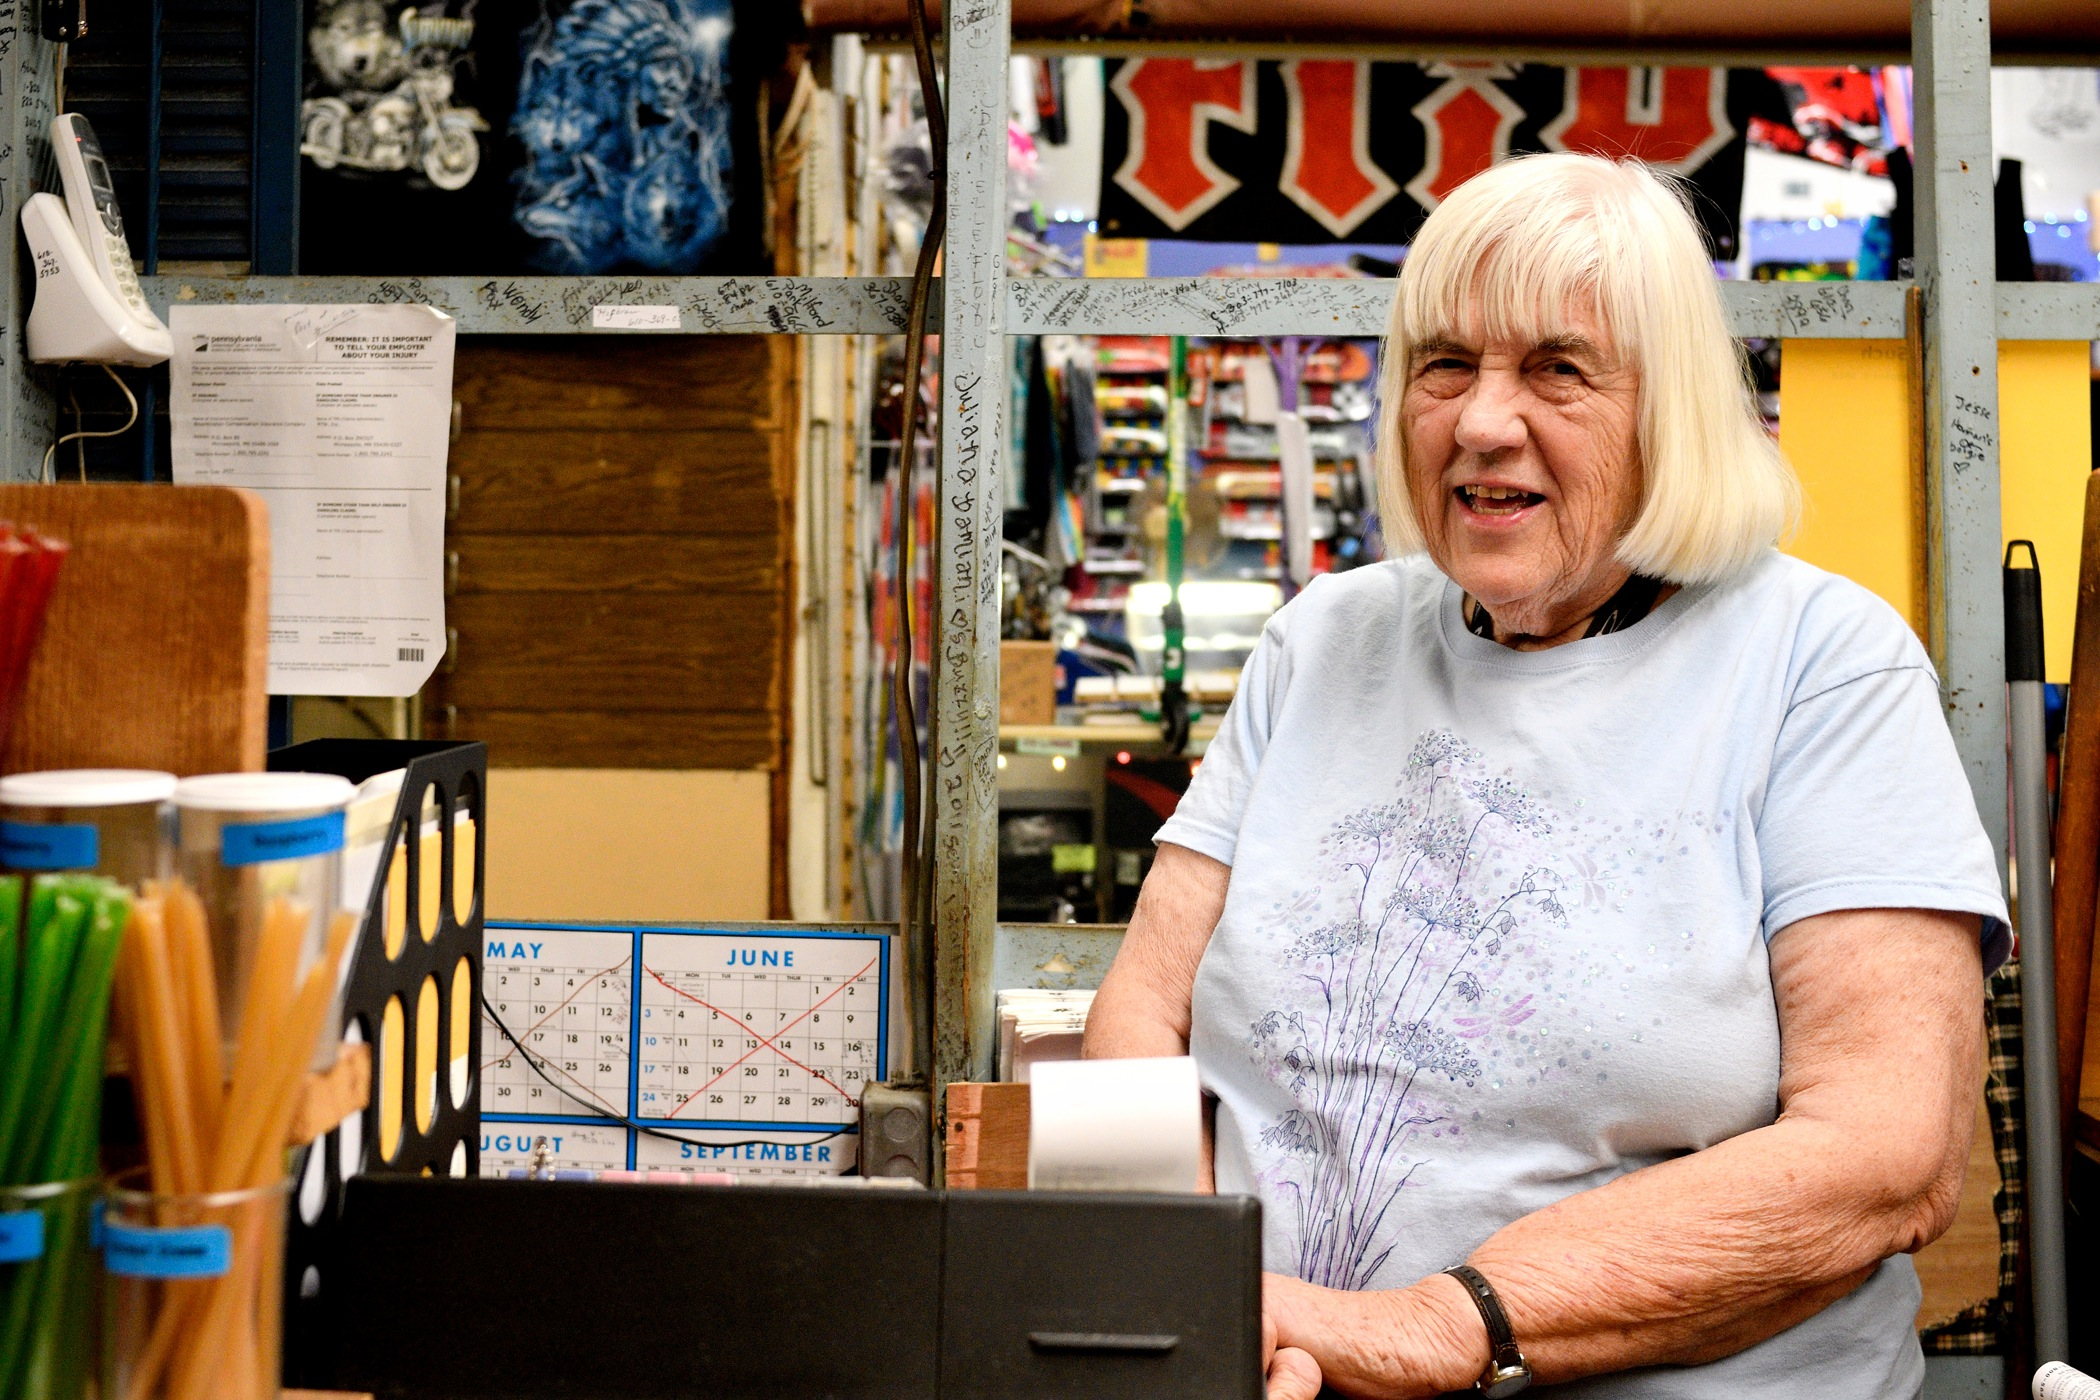 Spices 'N Such owner Lorraine Brinkmann, a longtime vendor at Zern's, will reopen as early as October 5 at a new location in Pennsburg.